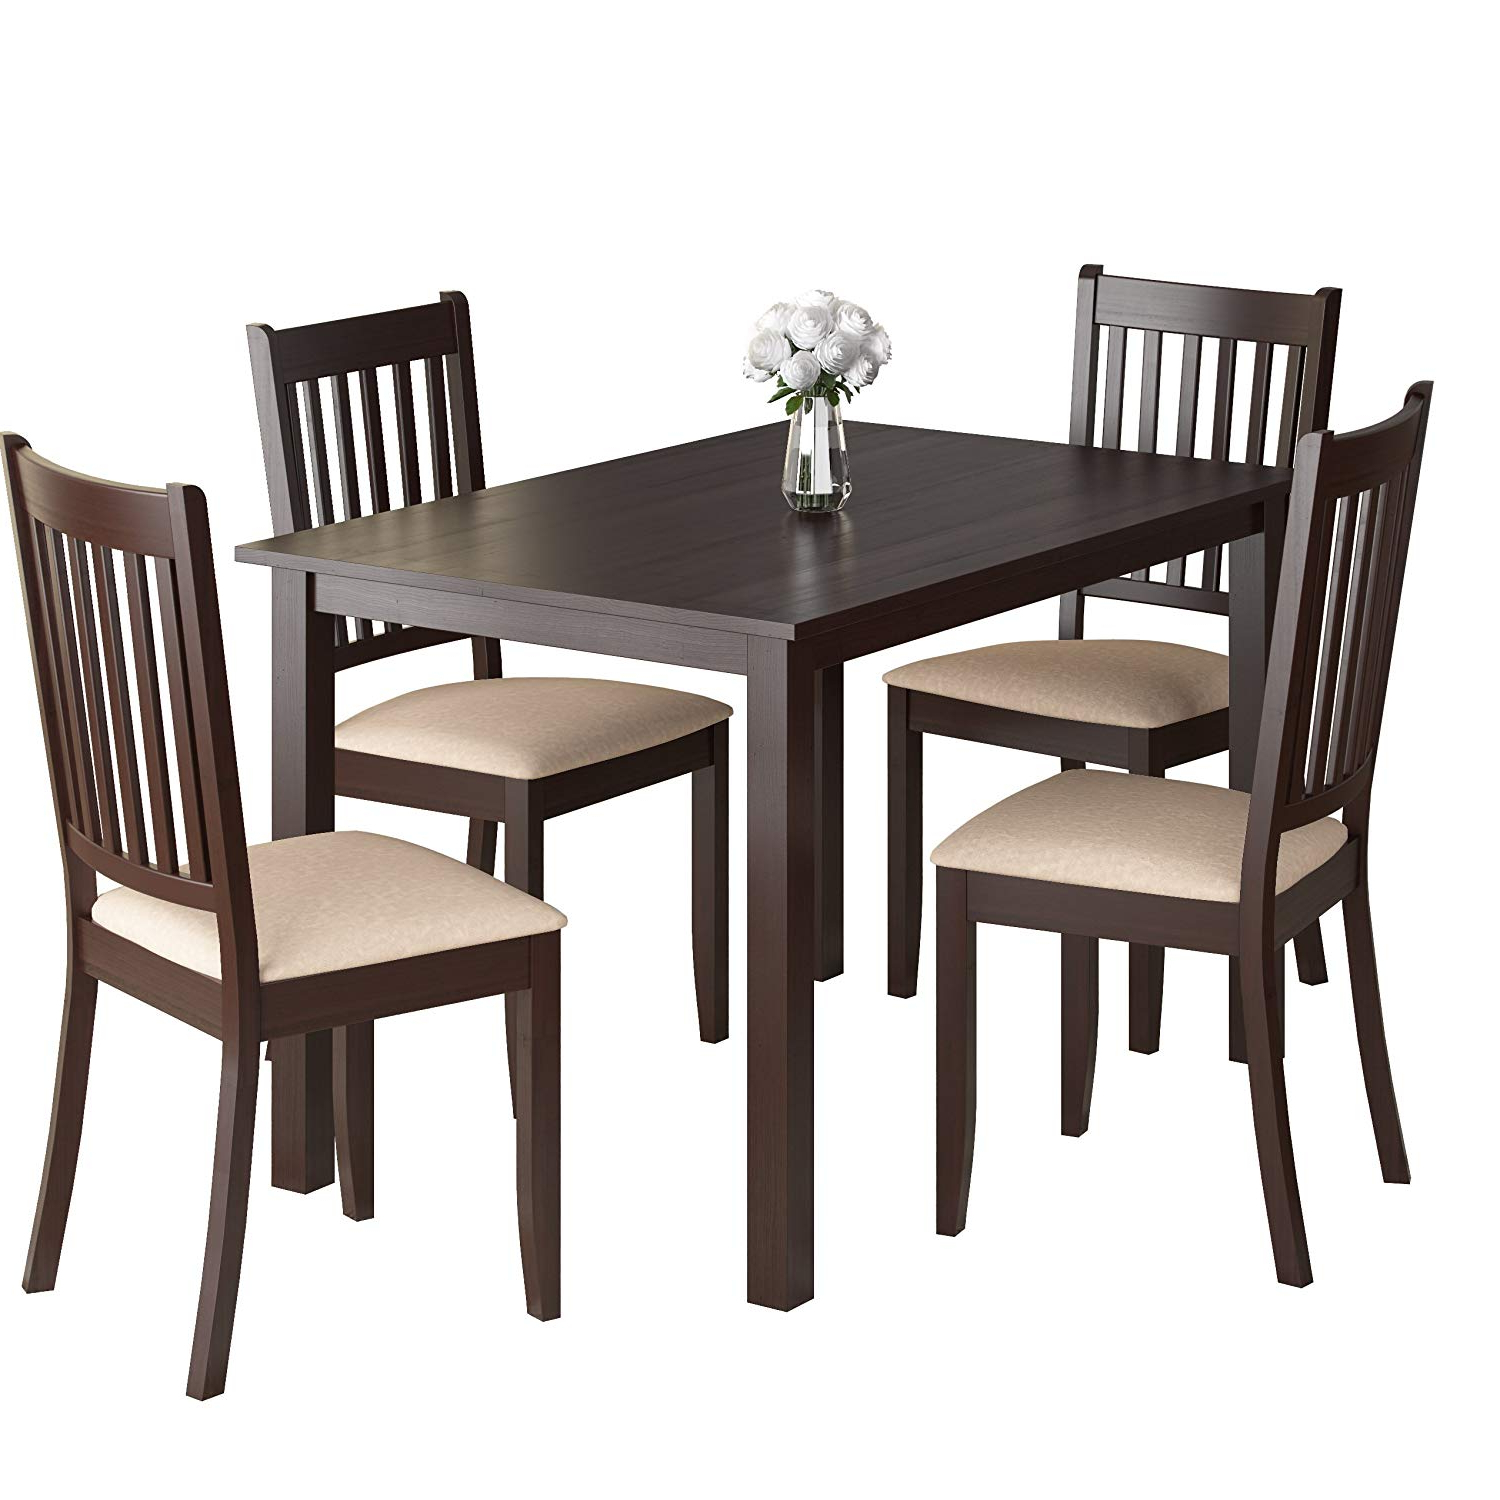 Amazon – Corliving Drg 595 Z Atwood Dining Set, Brown Throughout Widely Used Atwood Transitional Square Dining Tables (View 2 of 30)